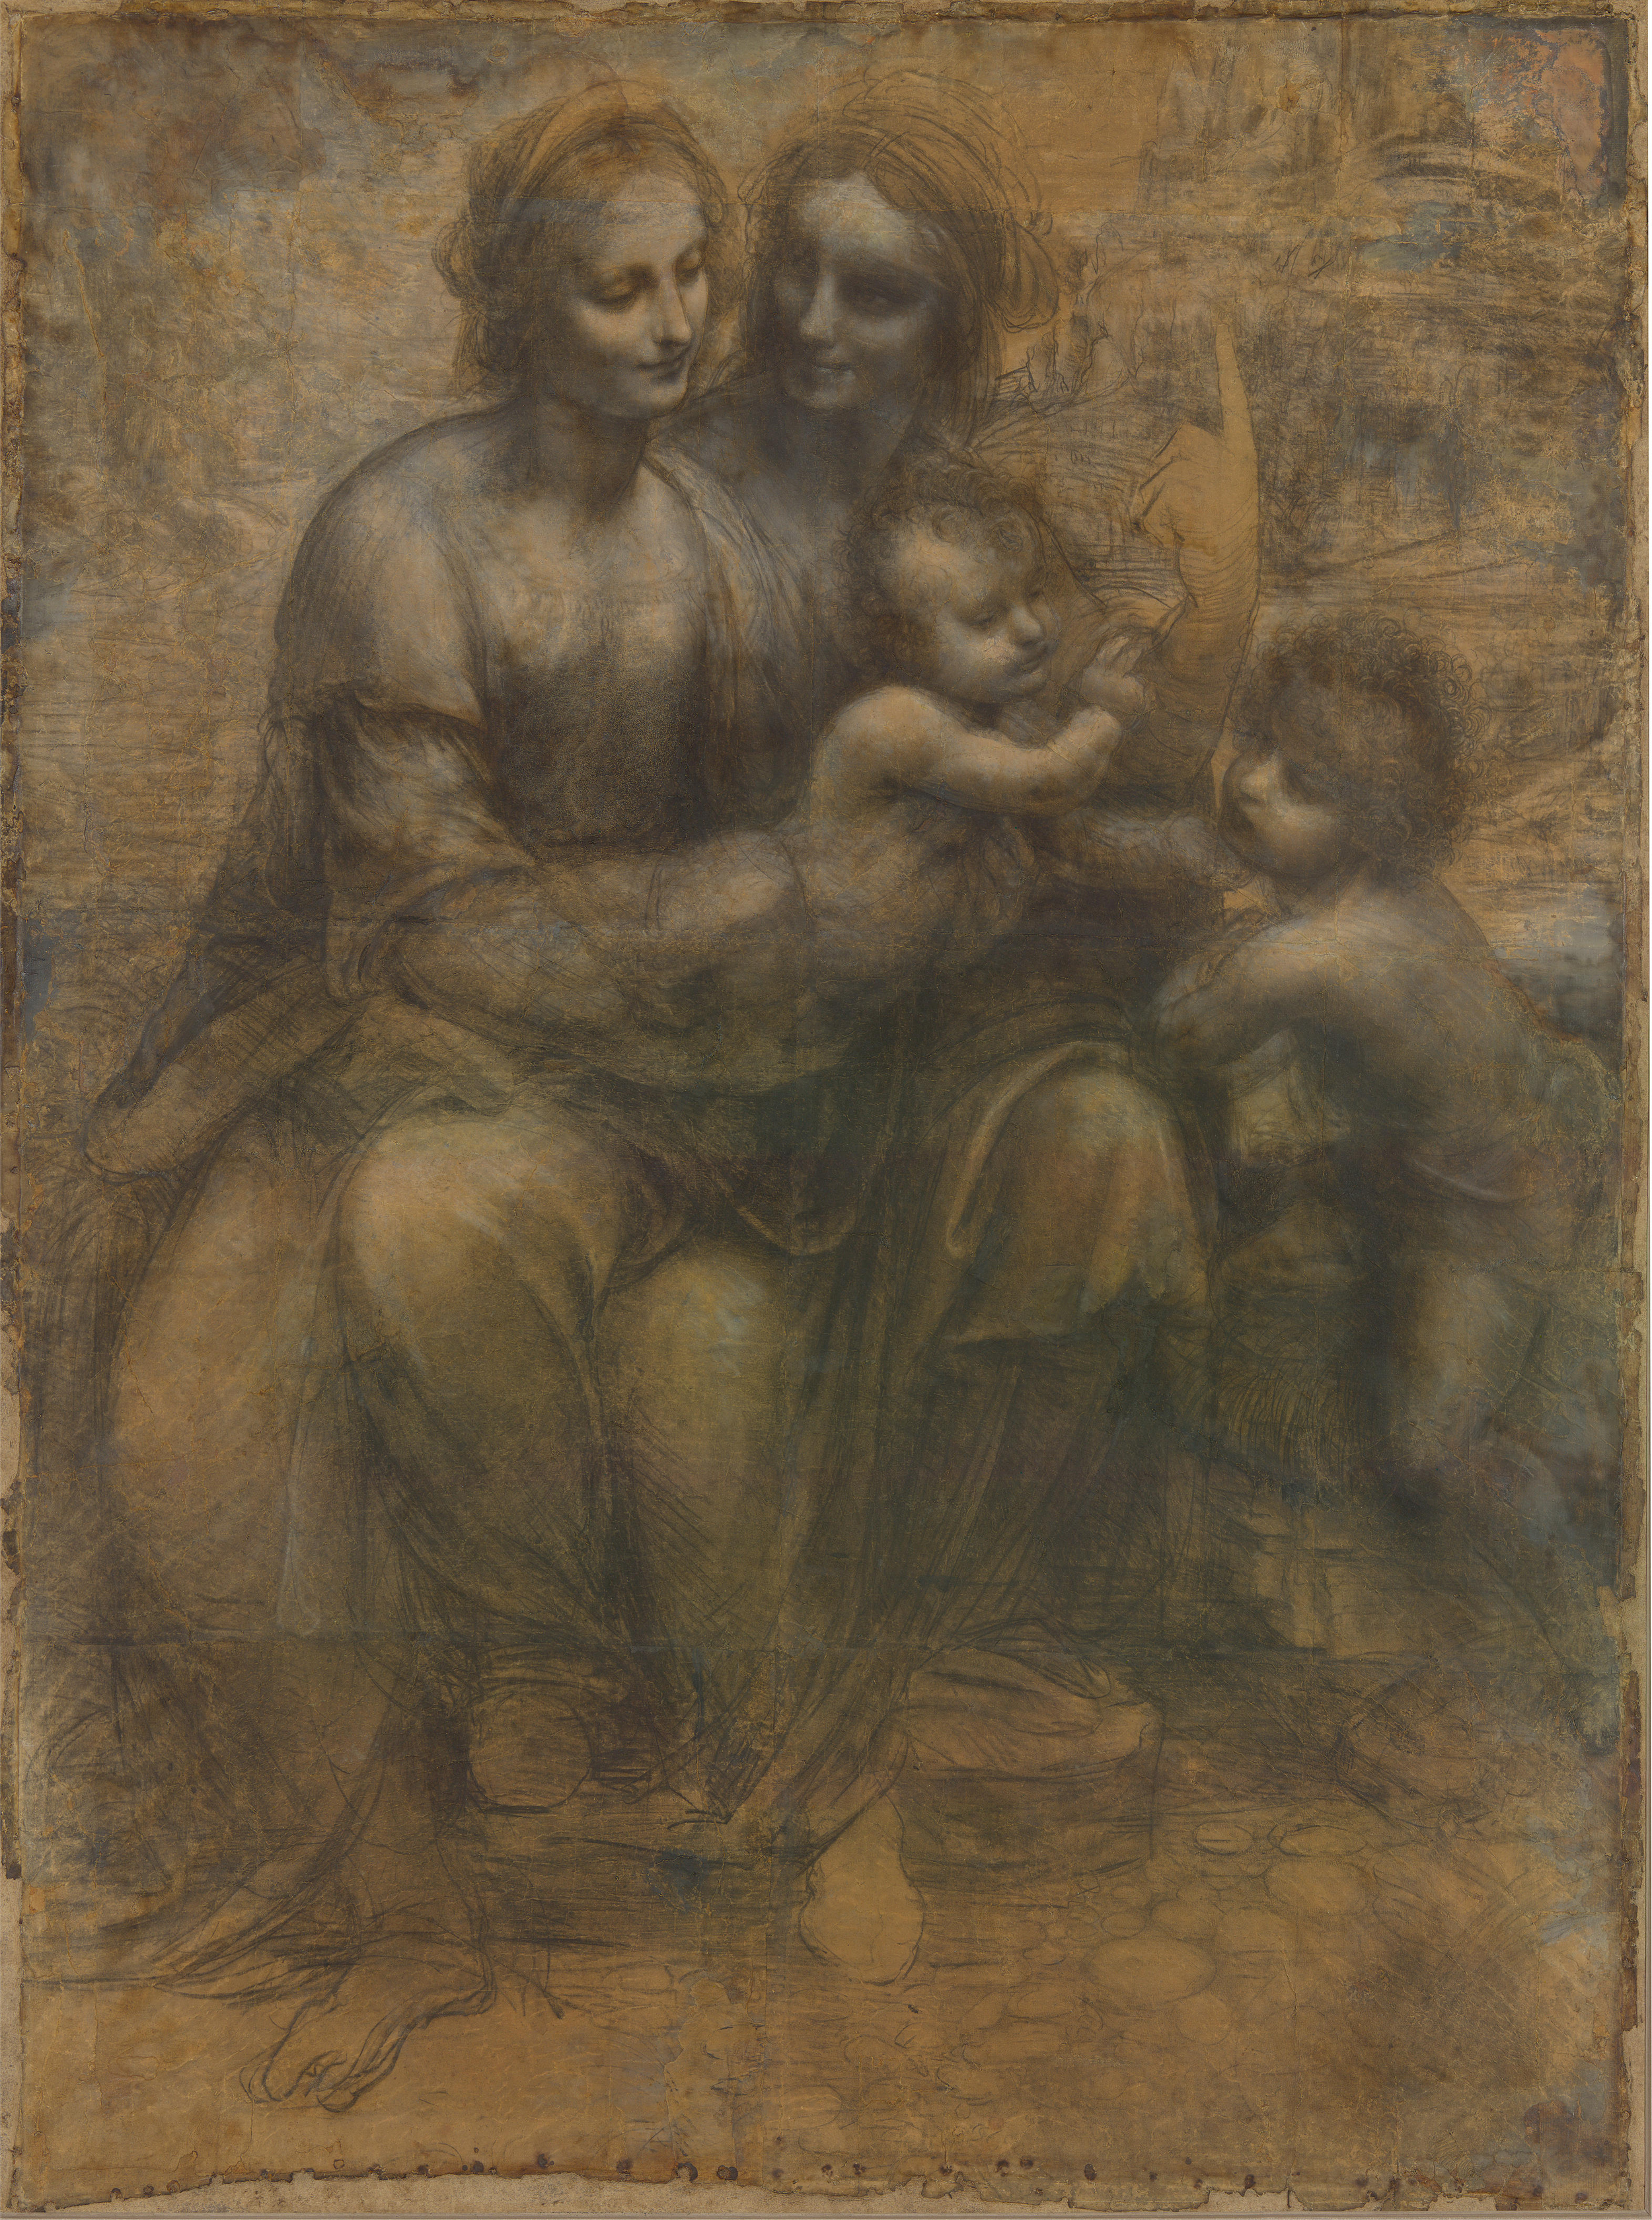 The Virgin and Child with St Anne and St John the Baptist, Leonardo DaVinci c. 1499–1500 or c. 1506–8